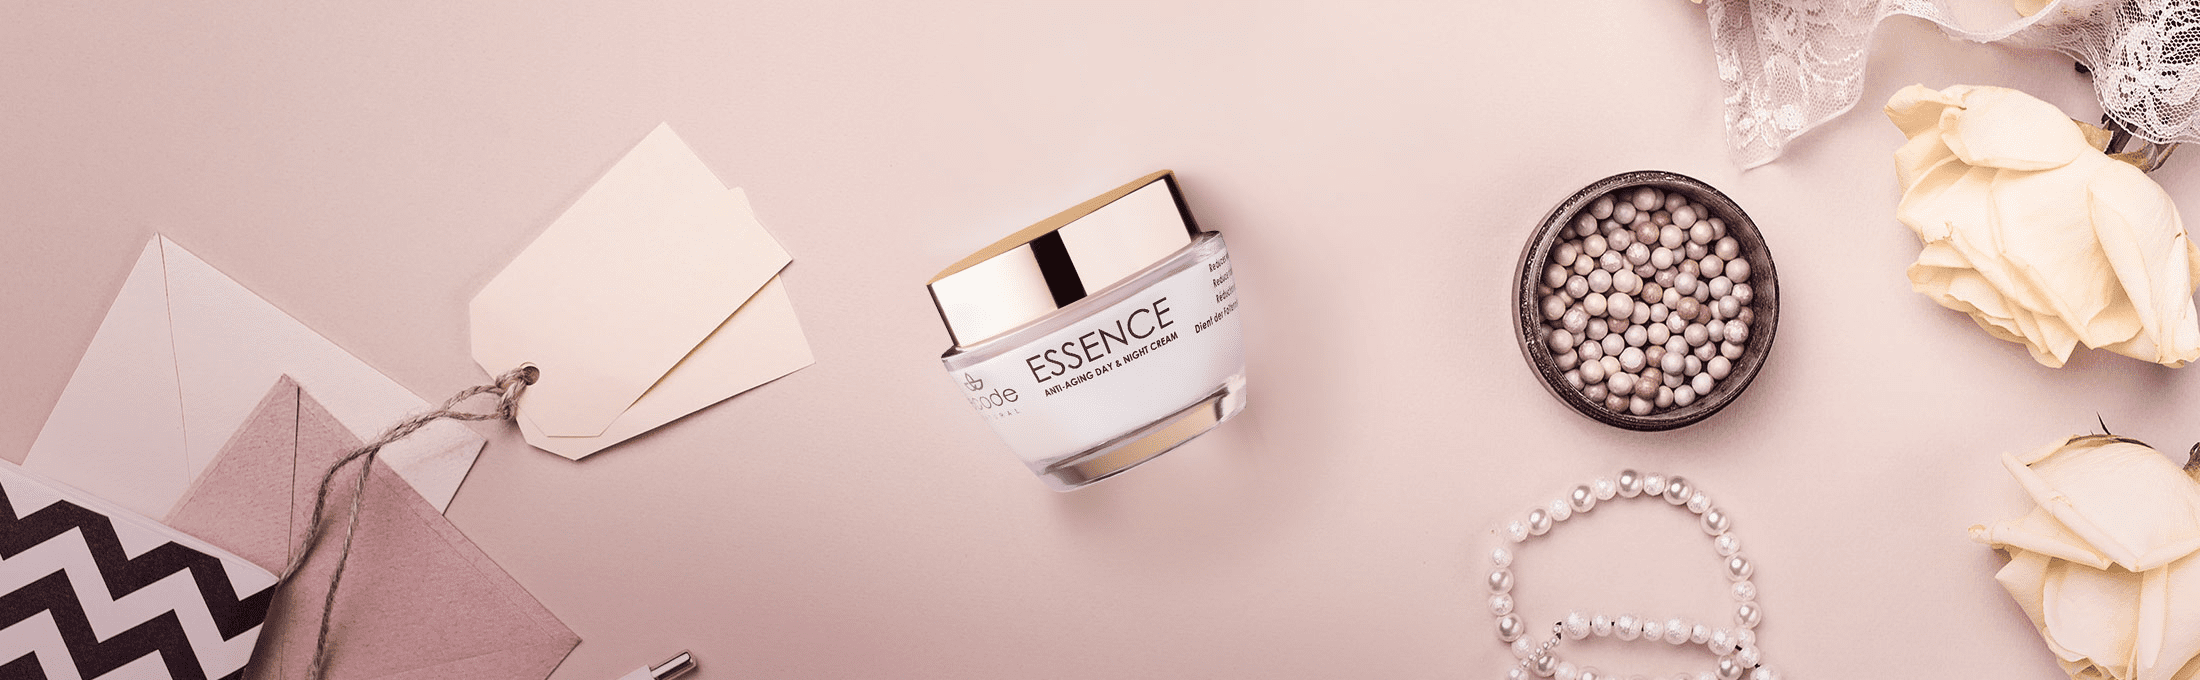 Essential care for your skin